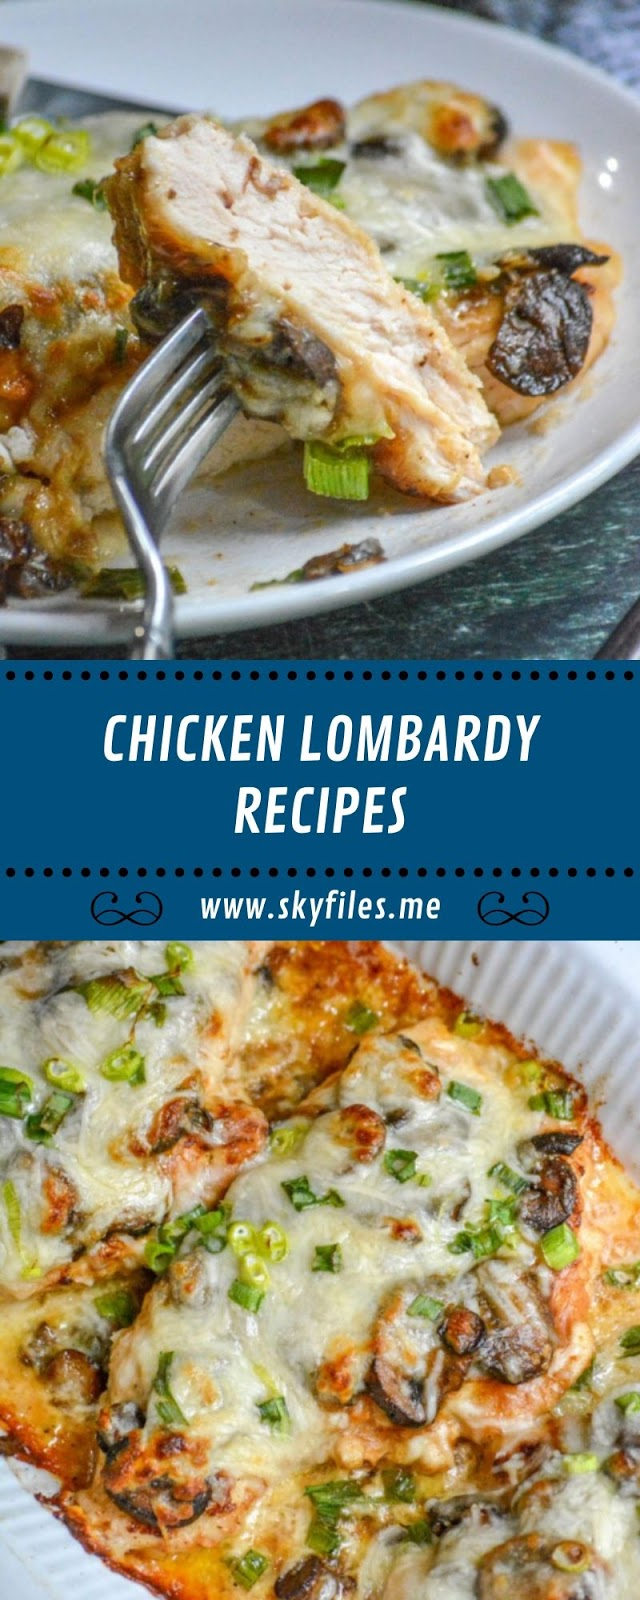 CHICKEN LOMBARDY RECIPES